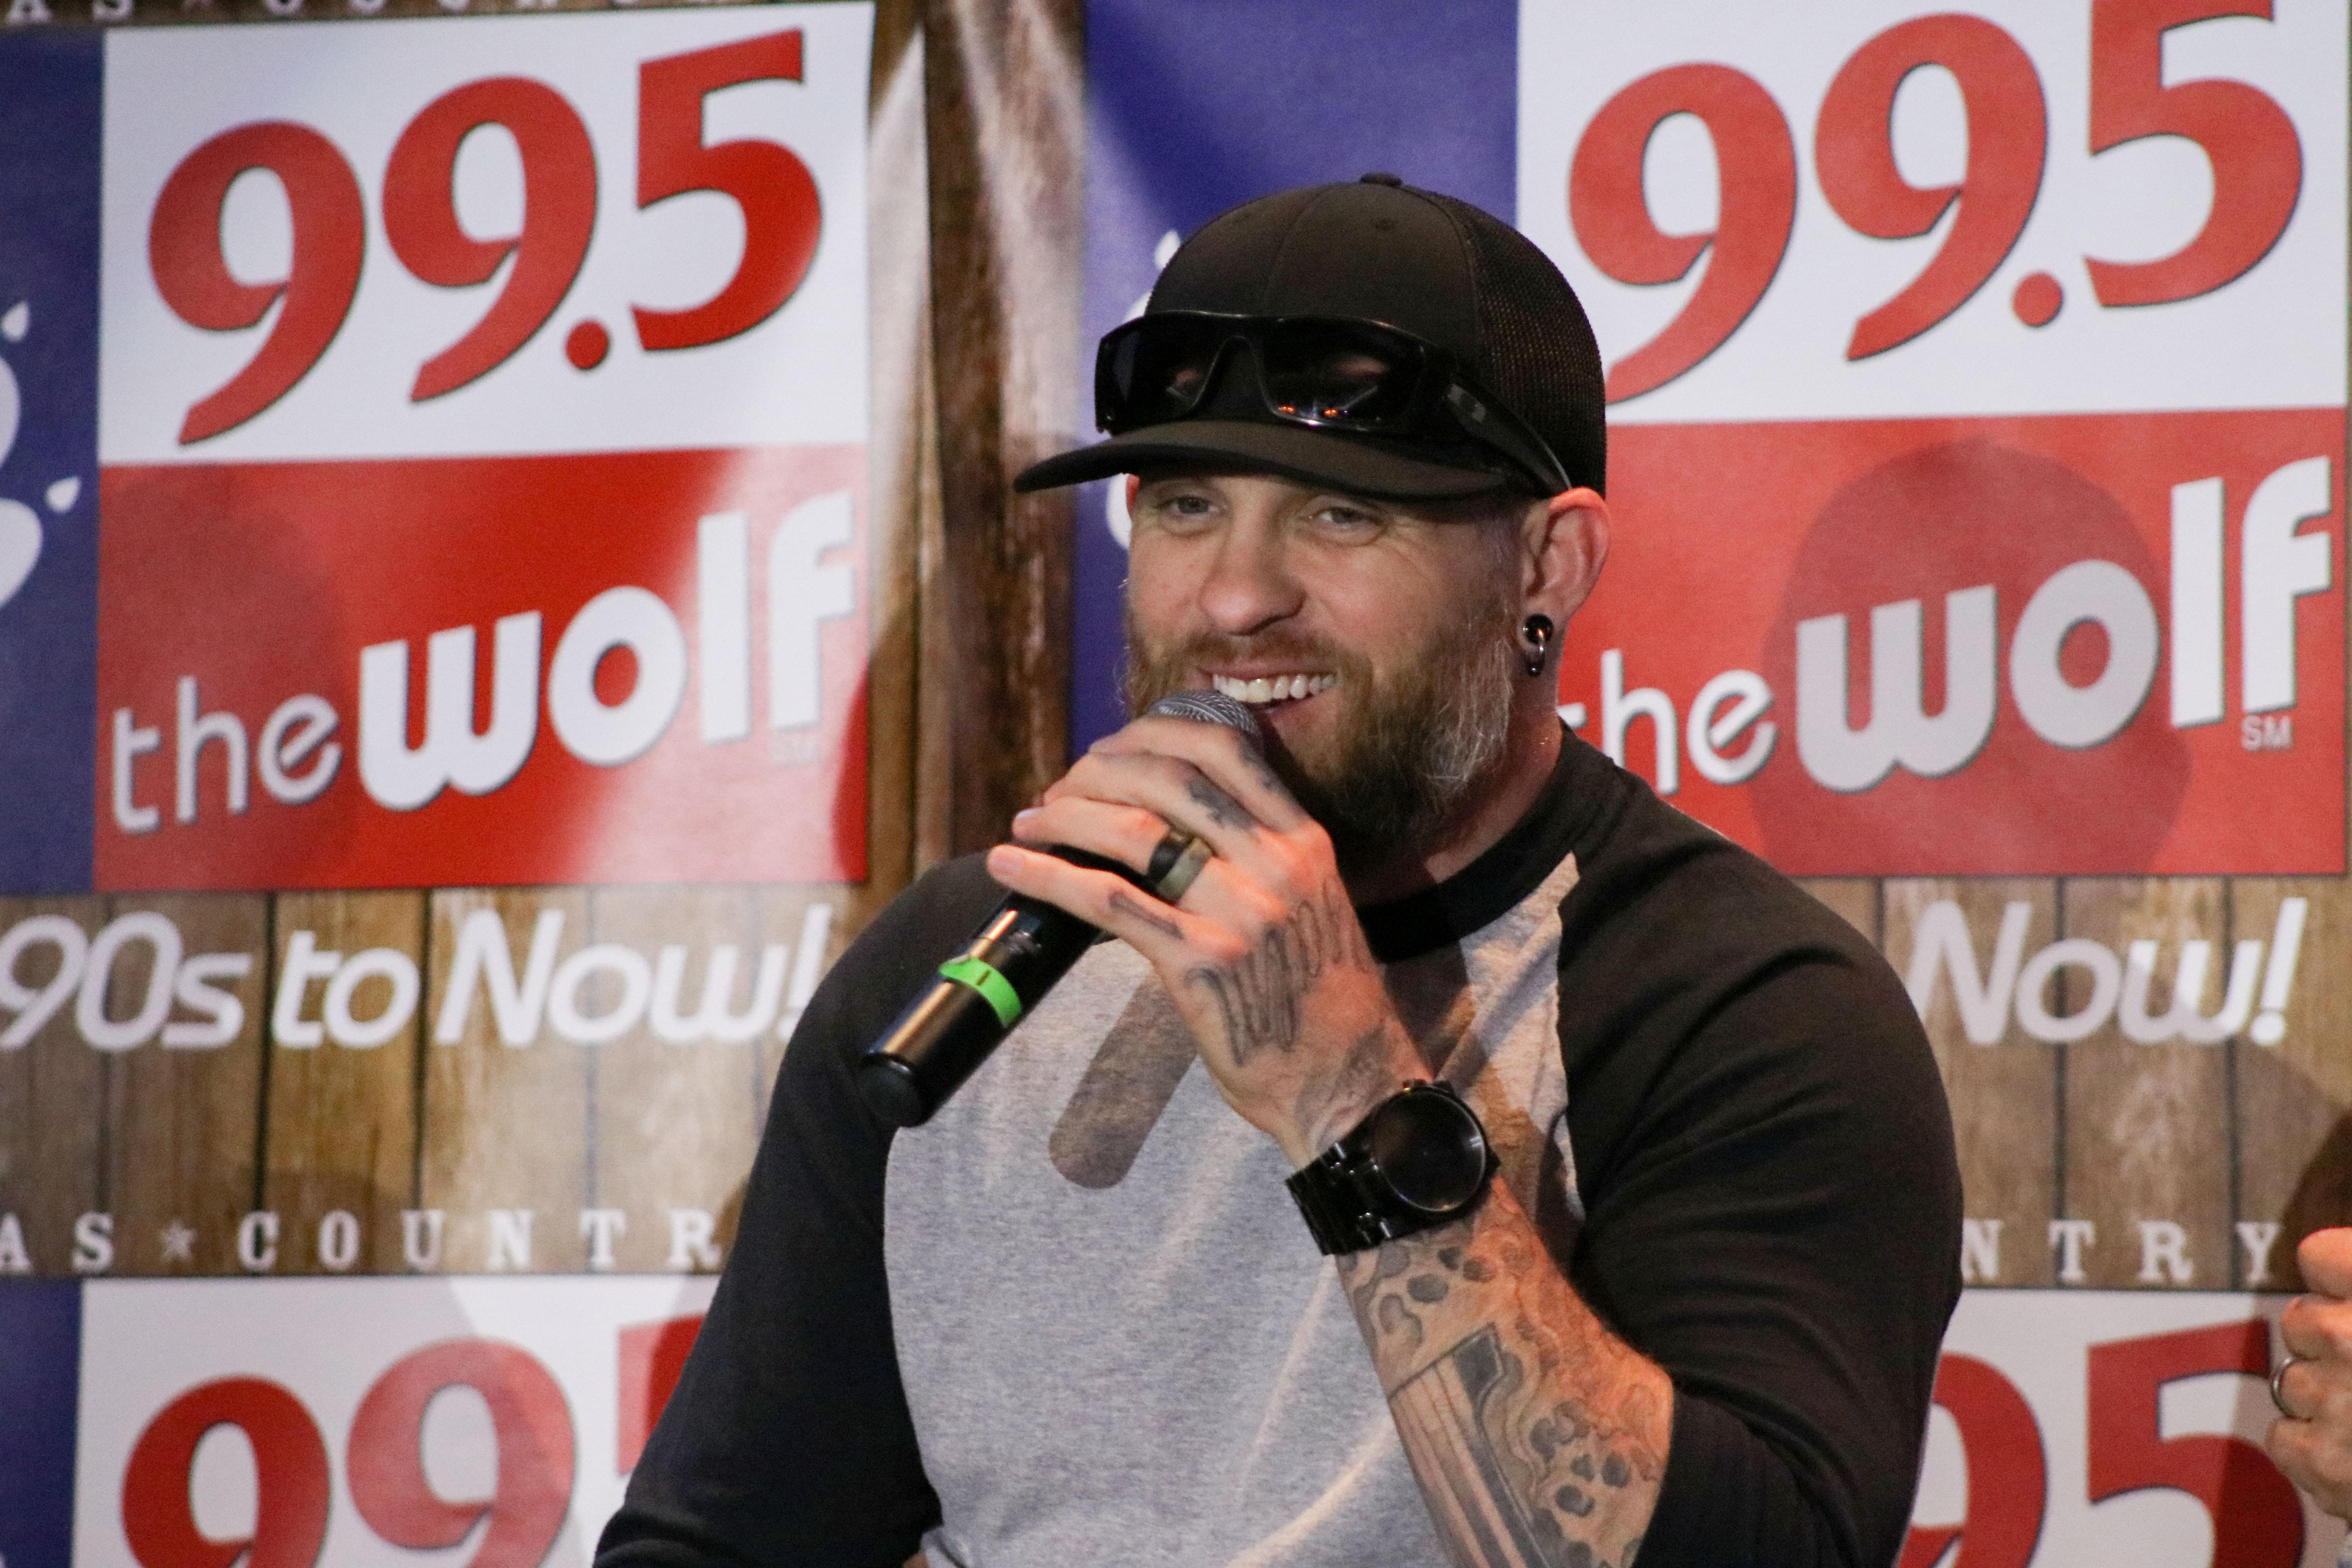 99.5 The Wolf VIP Experience with Brantley Gilbert